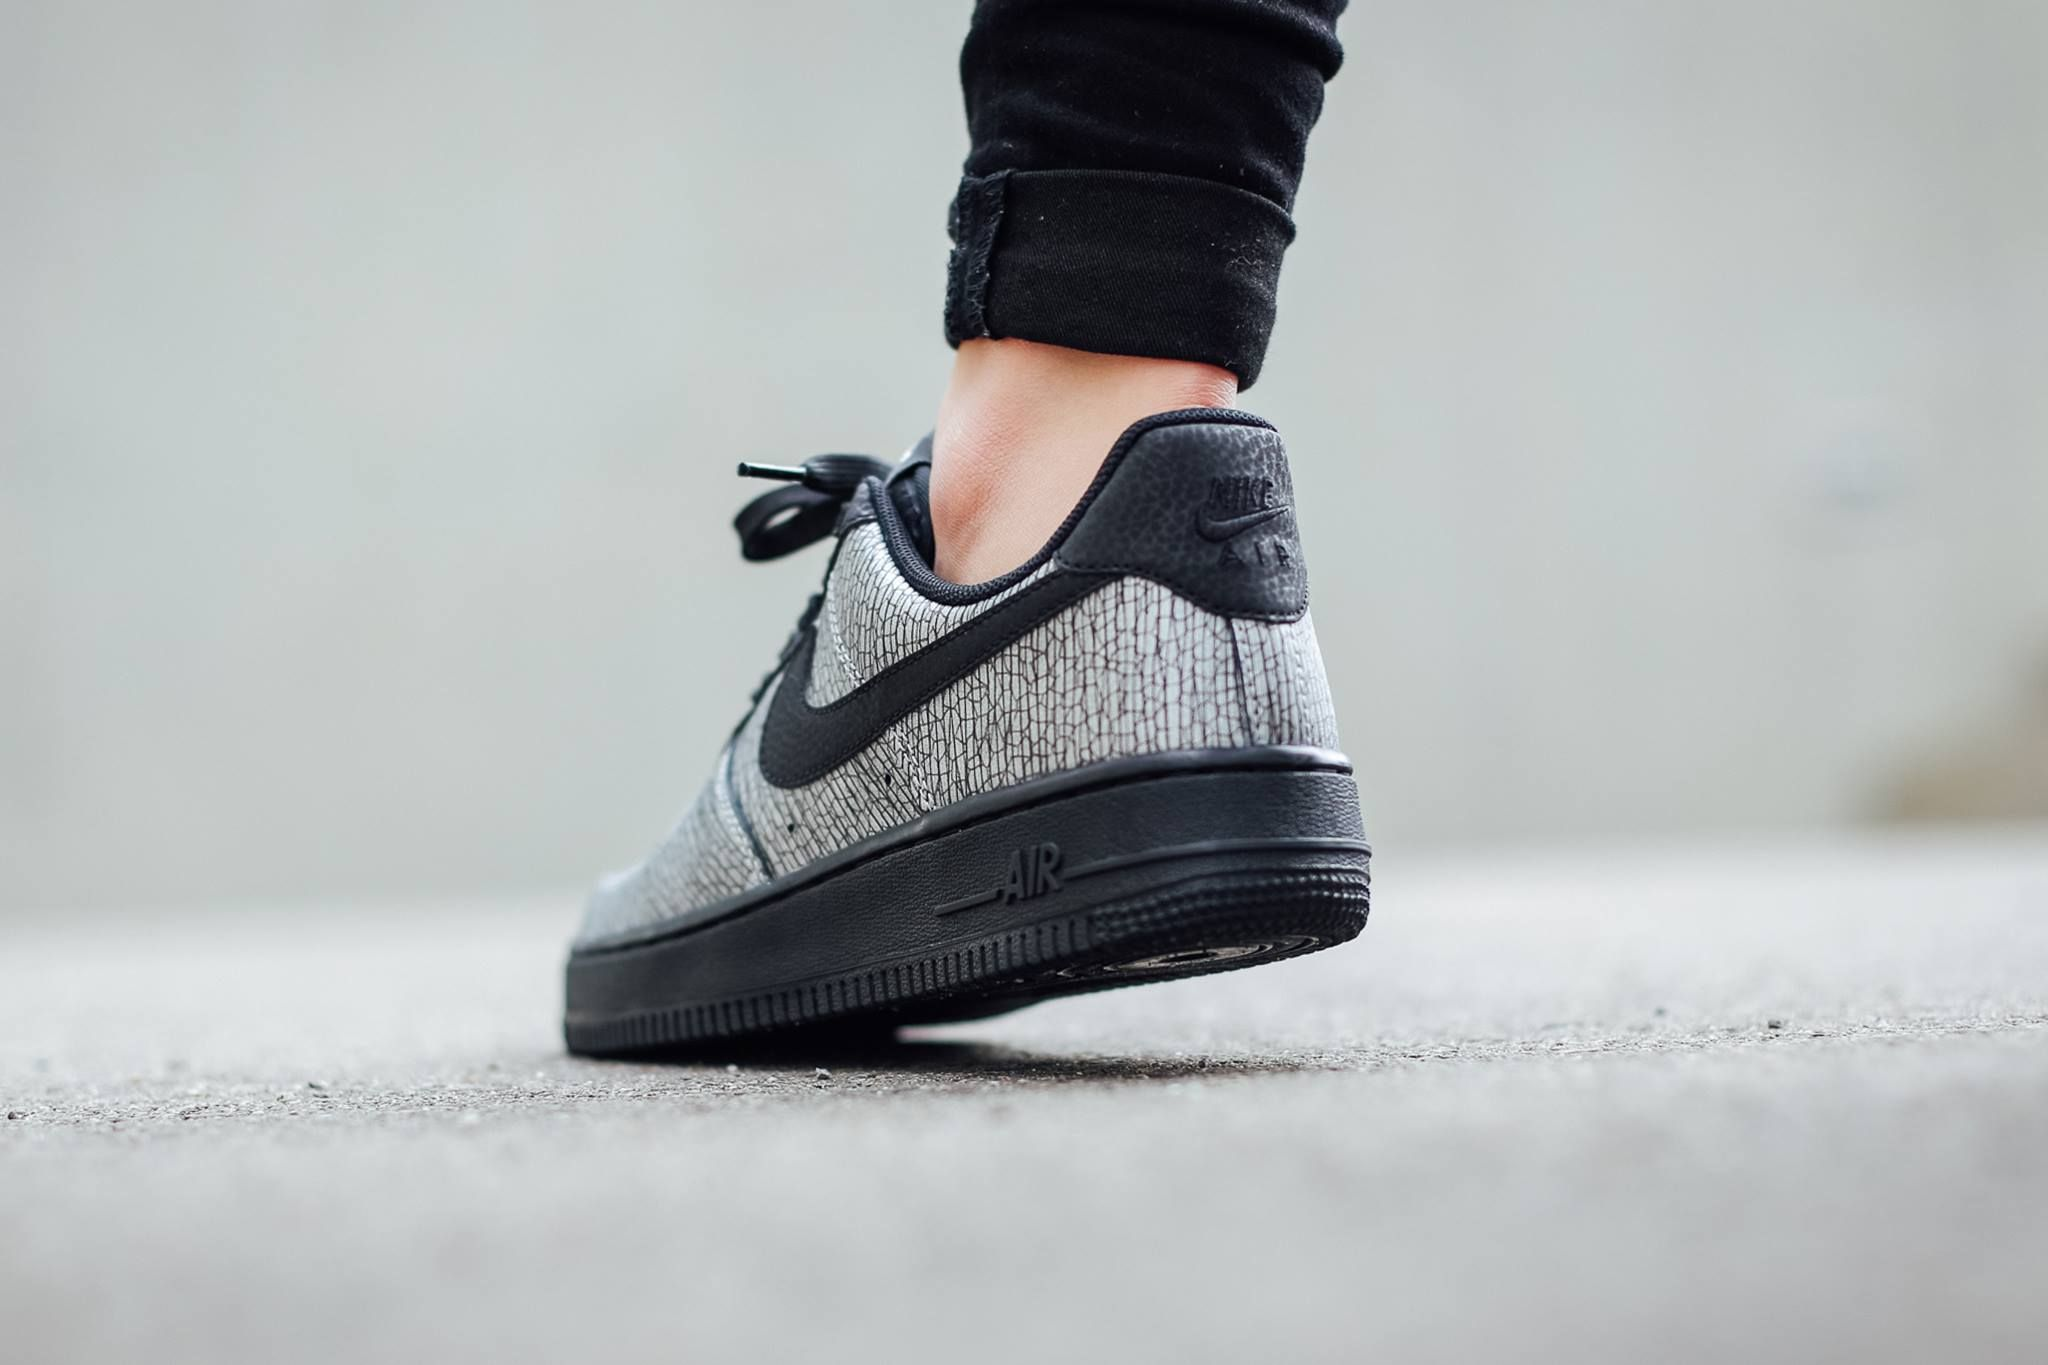 Nike Air Force 1 WMNS - Metallic Silver / Black